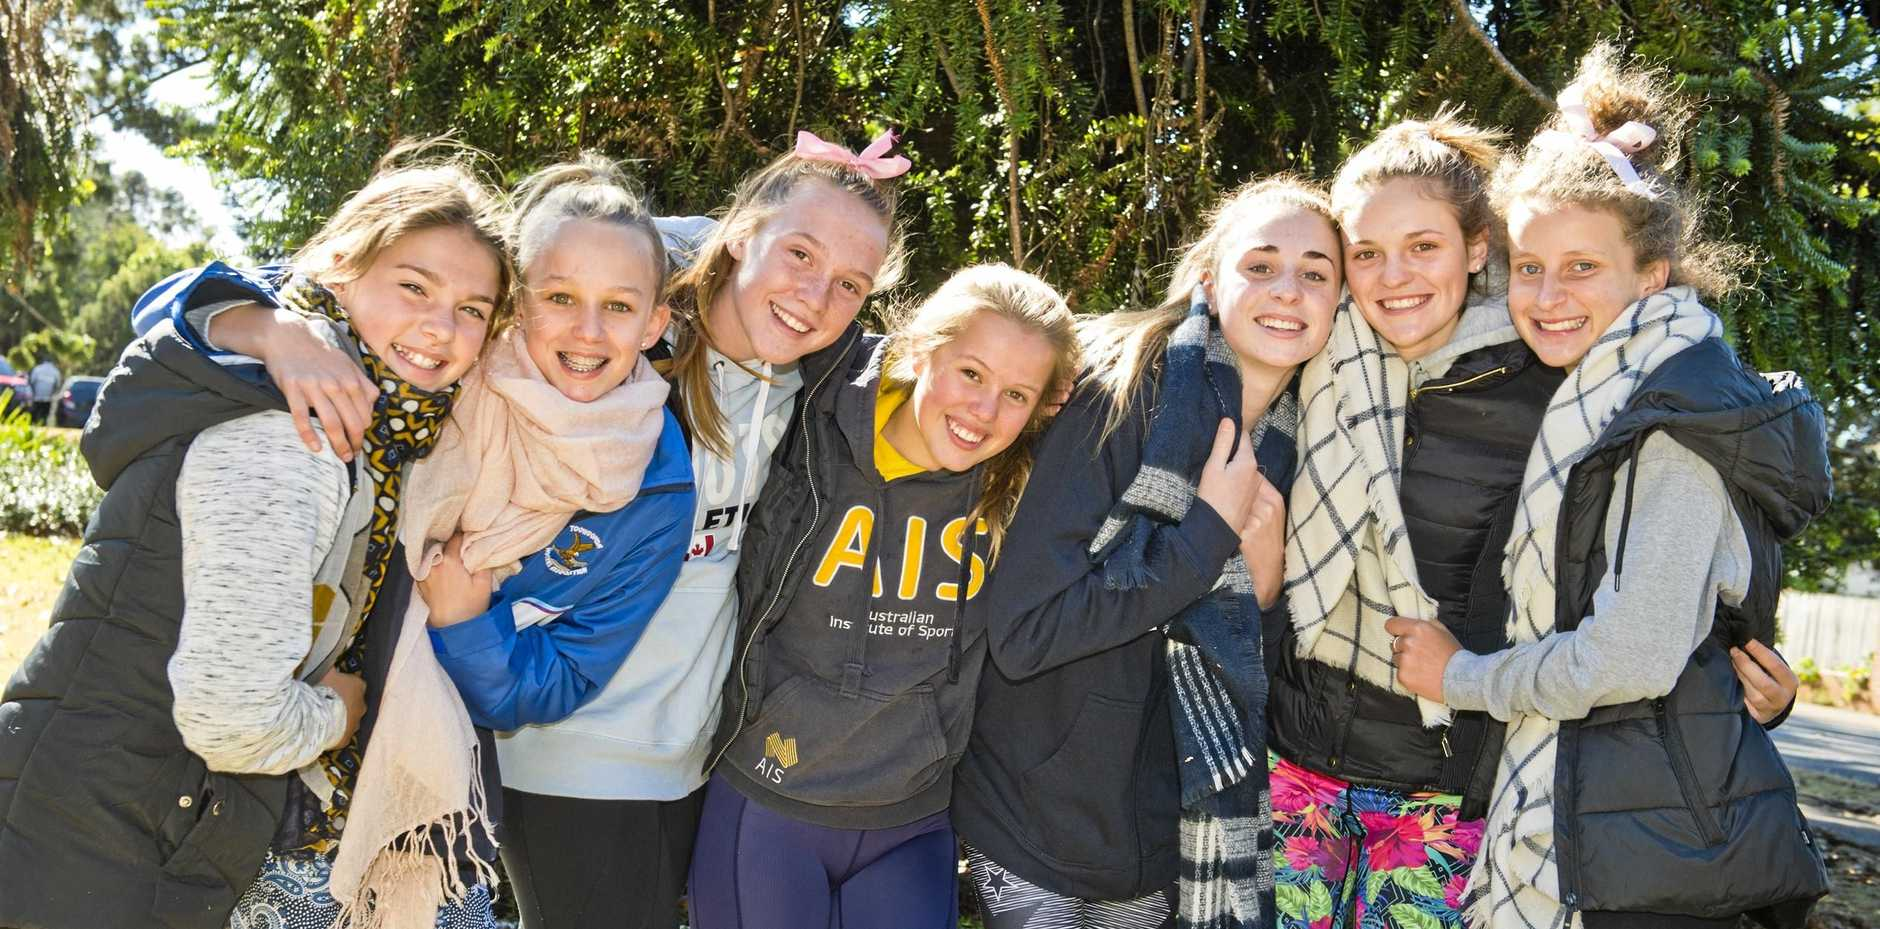 FEELING THE CHILL: Windy conditions can't stop a 13-year-old's olds birthday party in Queens Park (from left) Taleah Ackland, birthday girl Kingsley Brimblecombe, Maddy Weir, Mia Rogers, Layn Arnold, Jessica Fitzgibbons and Lucy Blakeney.